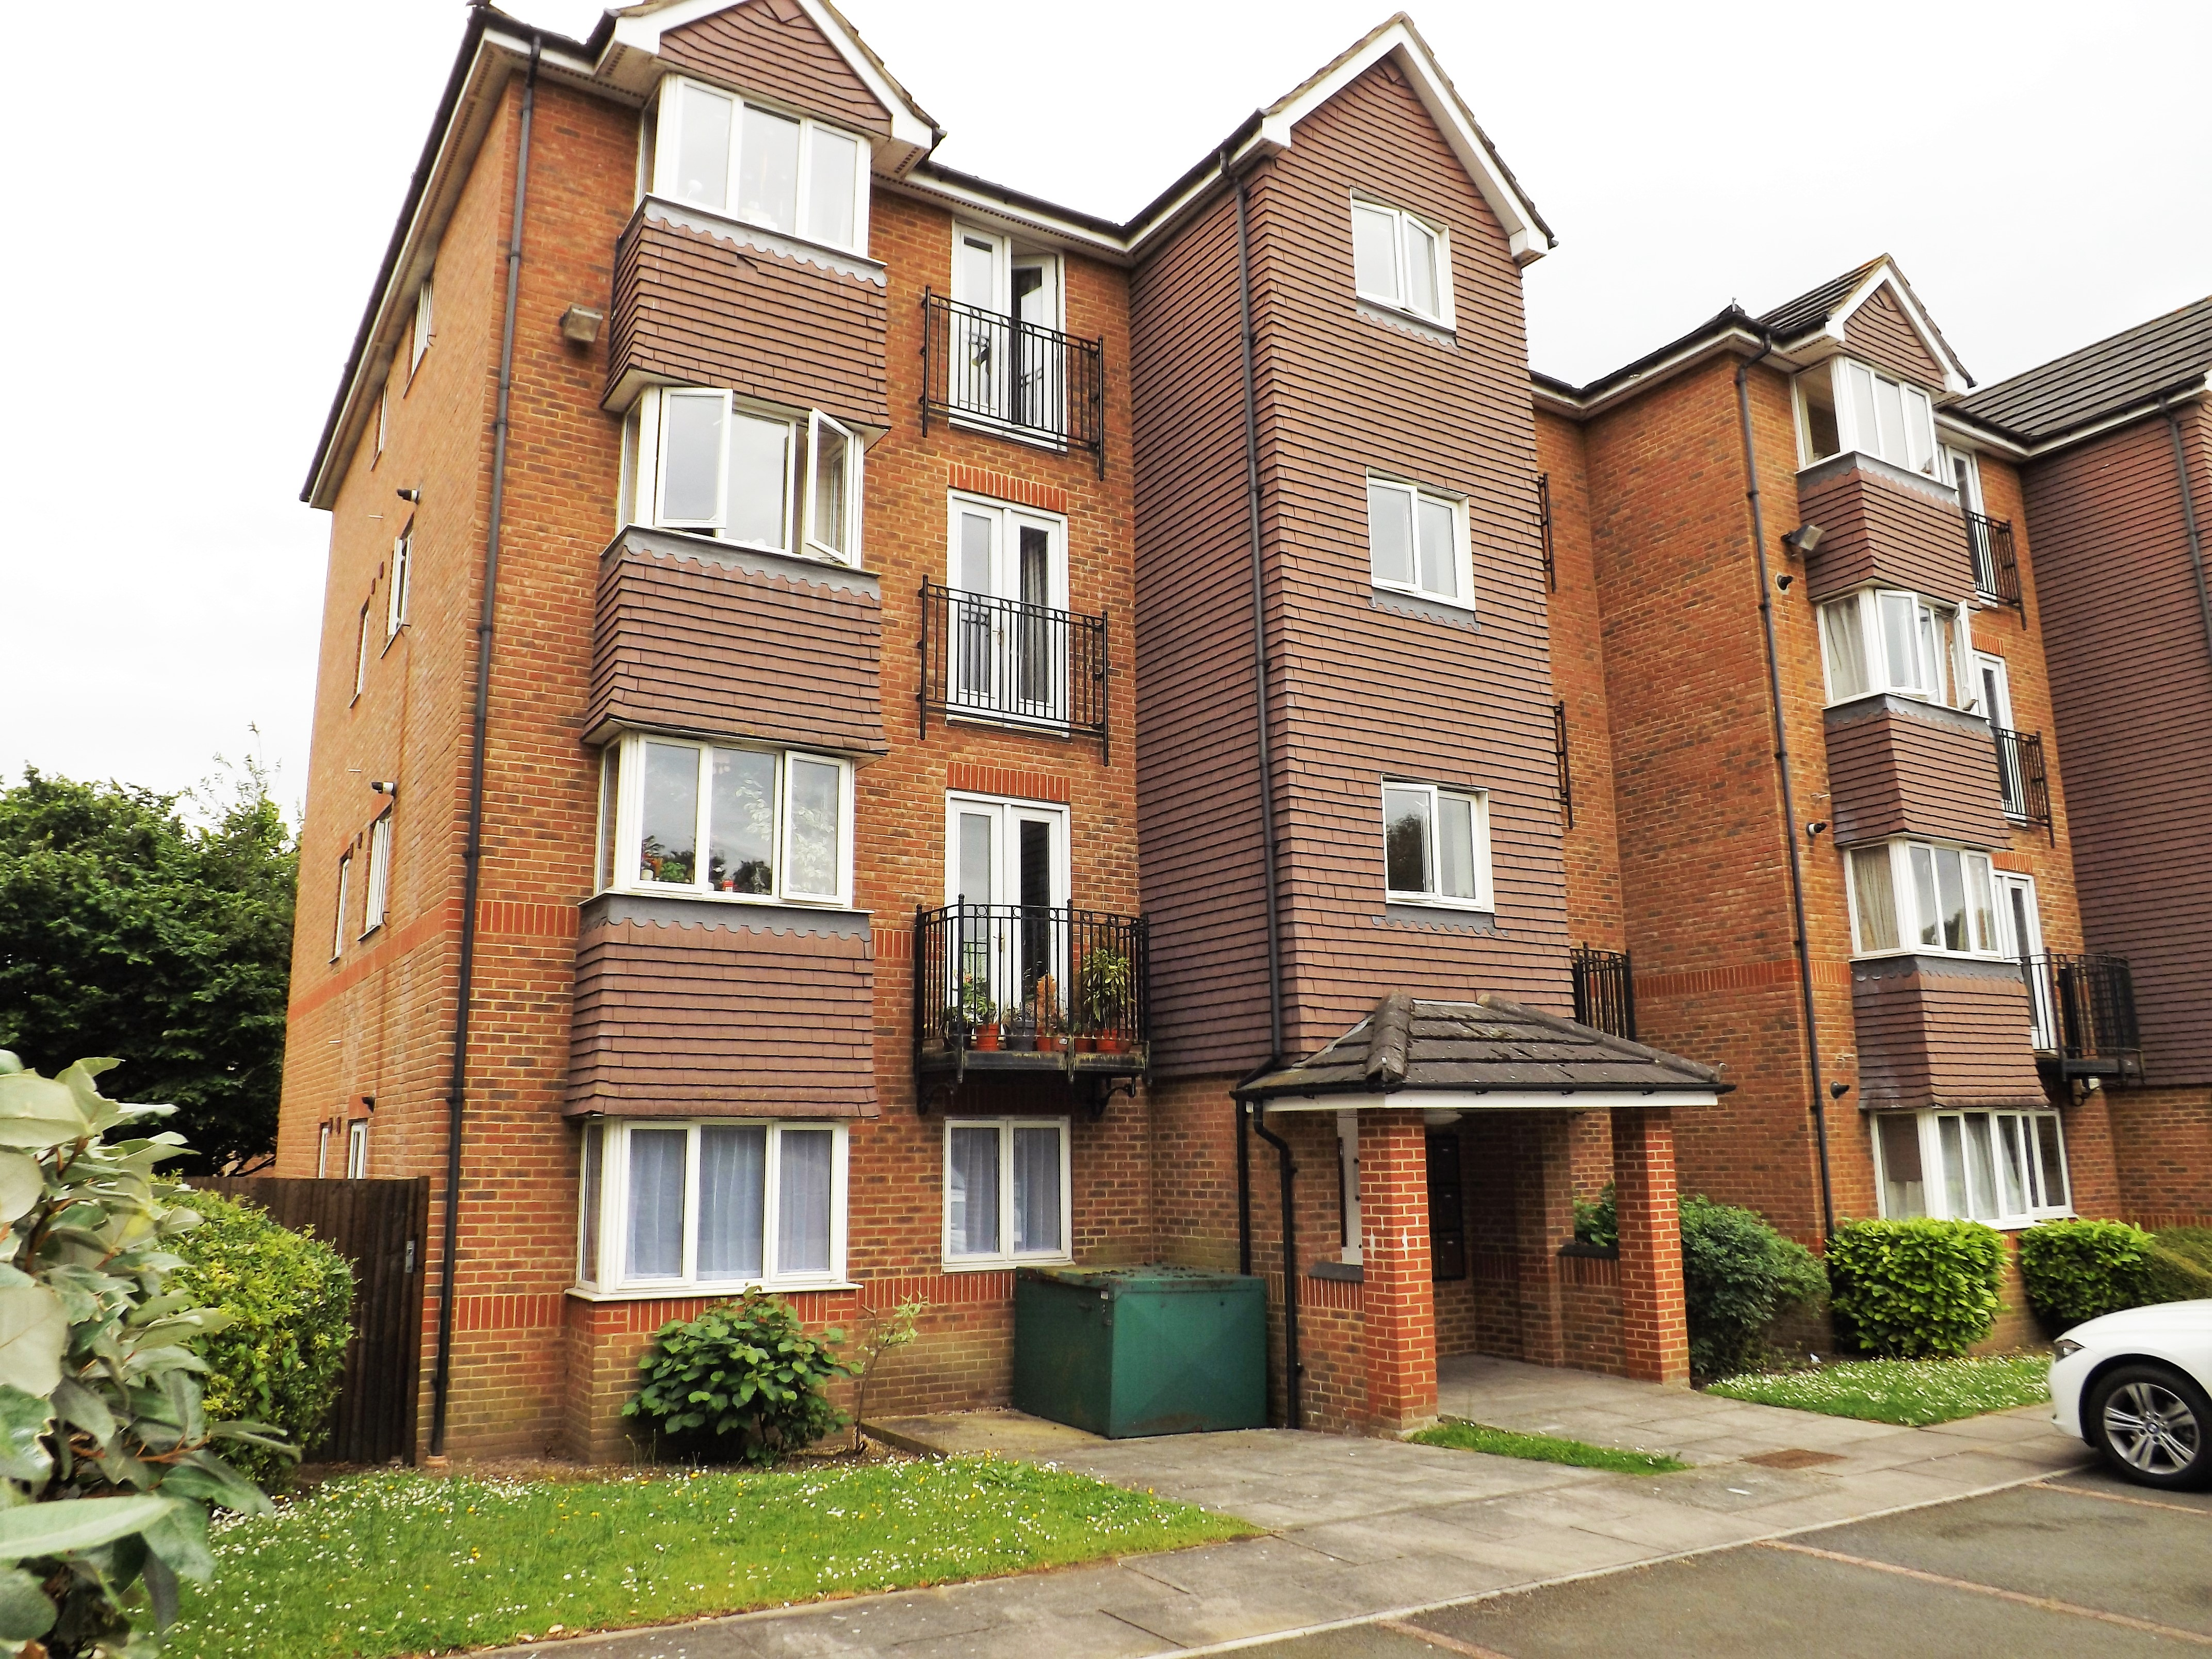 Jemmett Close, Norbiton, Kingston Upon Thames